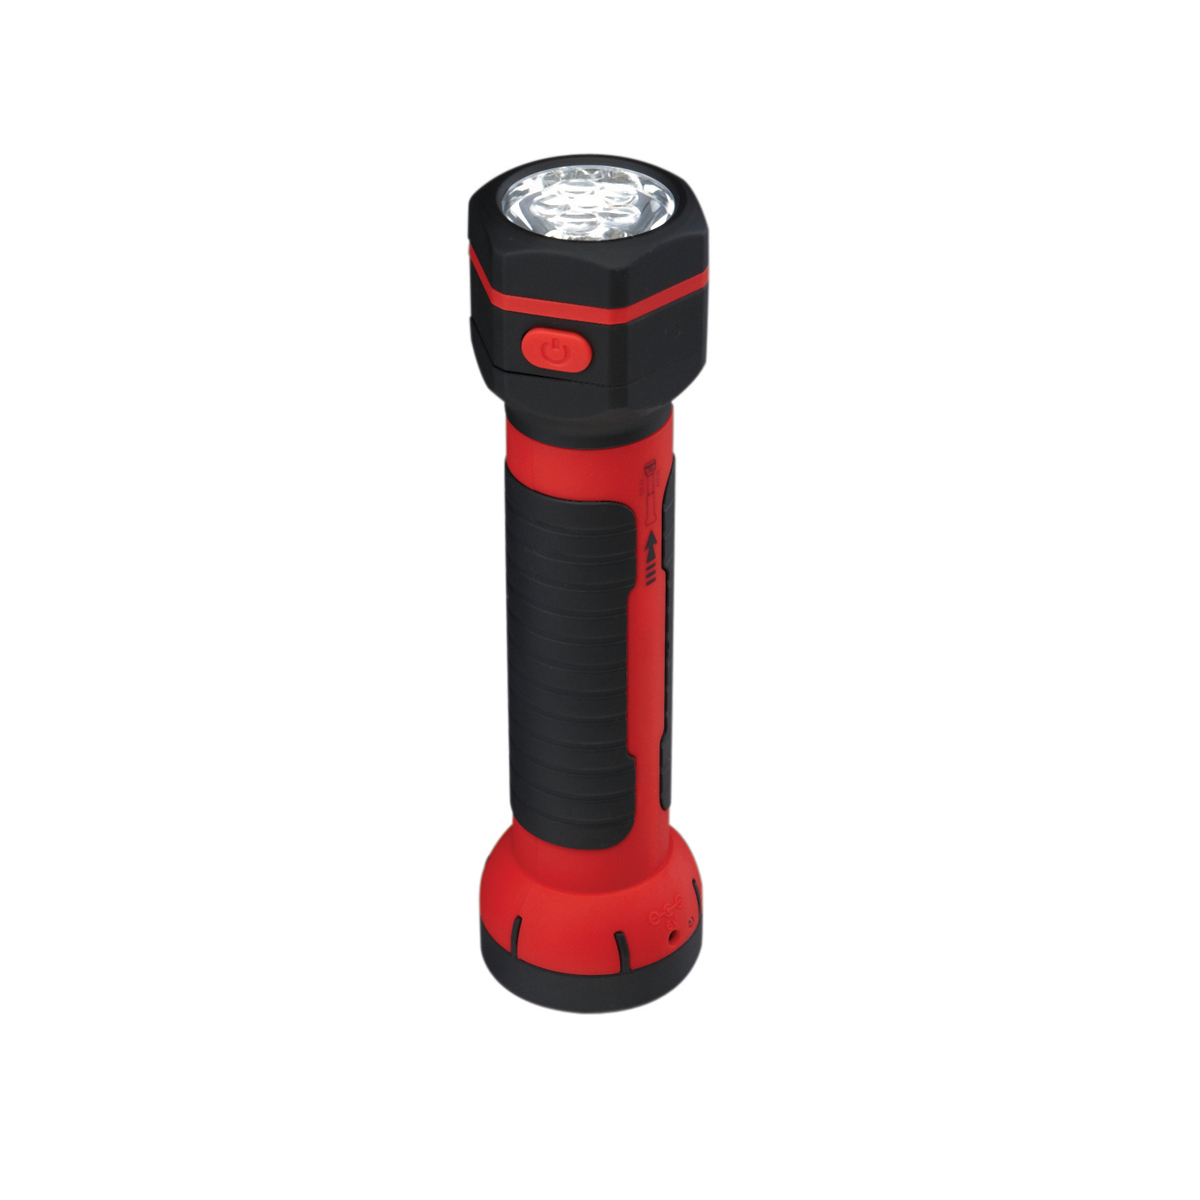 Channellock Led Rechargable Cordless Work Light Shop: 2-In-1 Extendable 36 LED Cordless Work Light